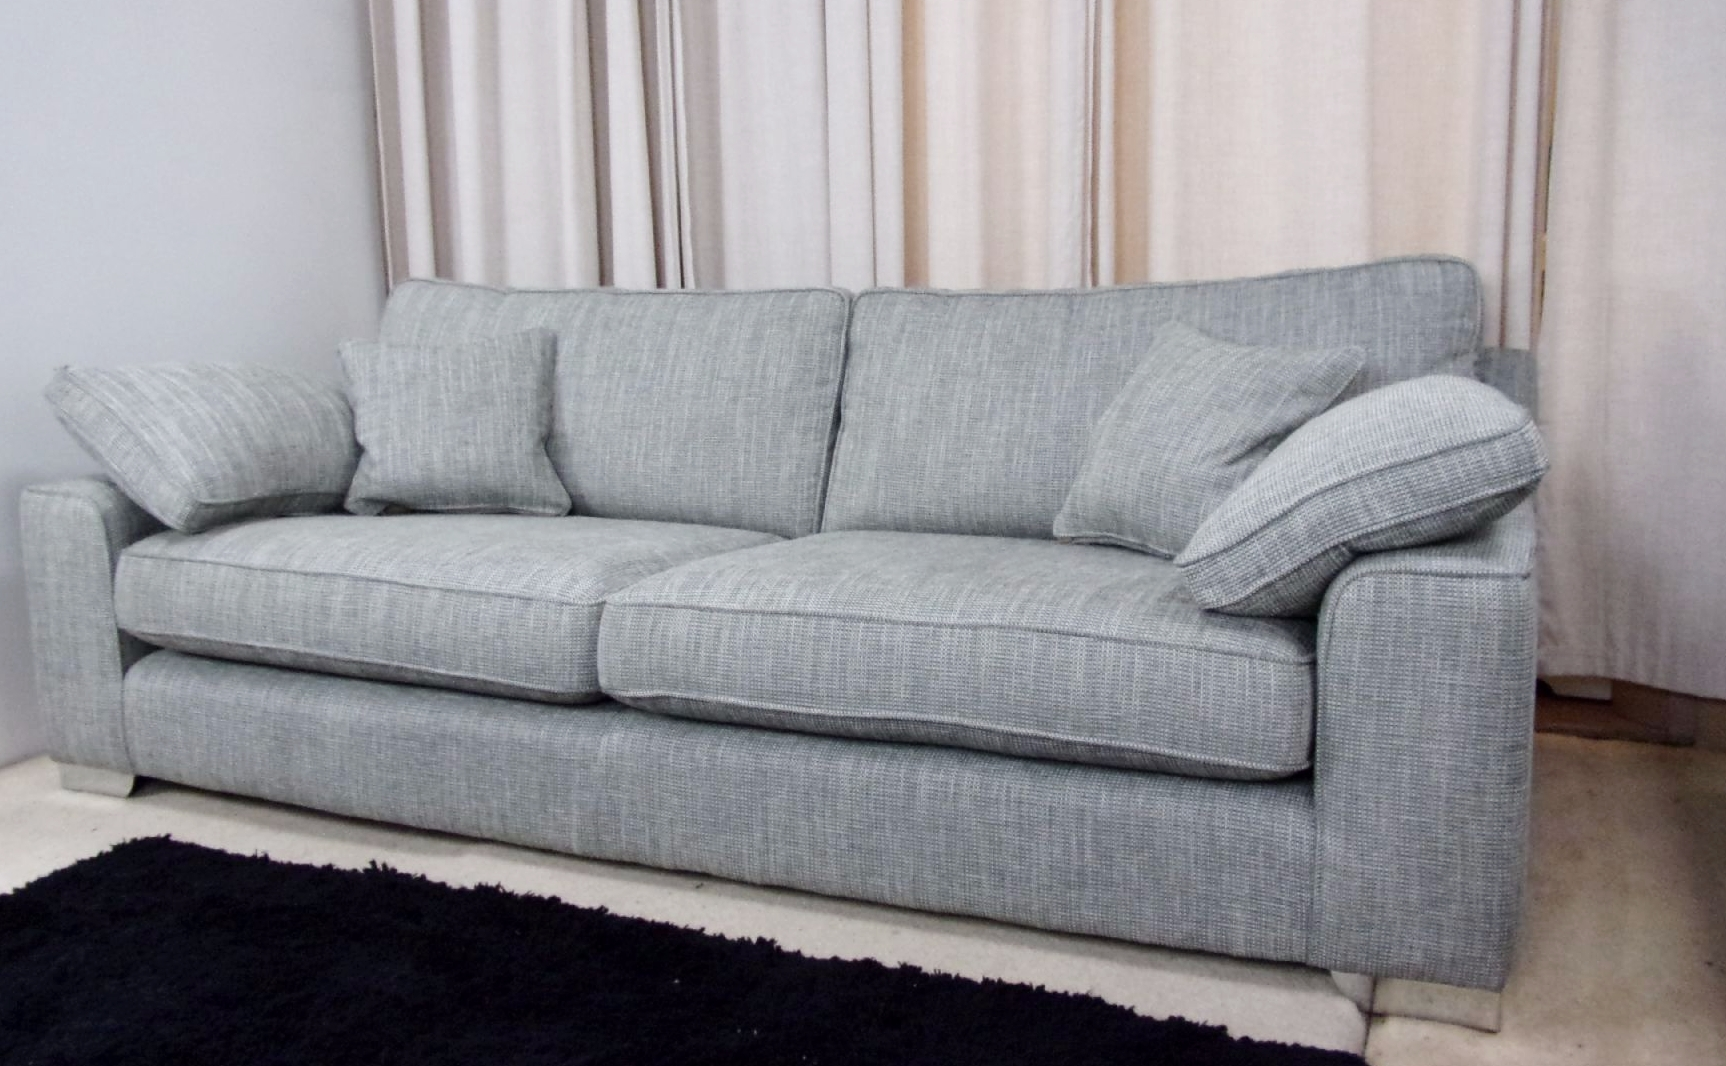 Large 4 Seater Sofa With Large 4 Seater Sofas (Image 16 of 20)